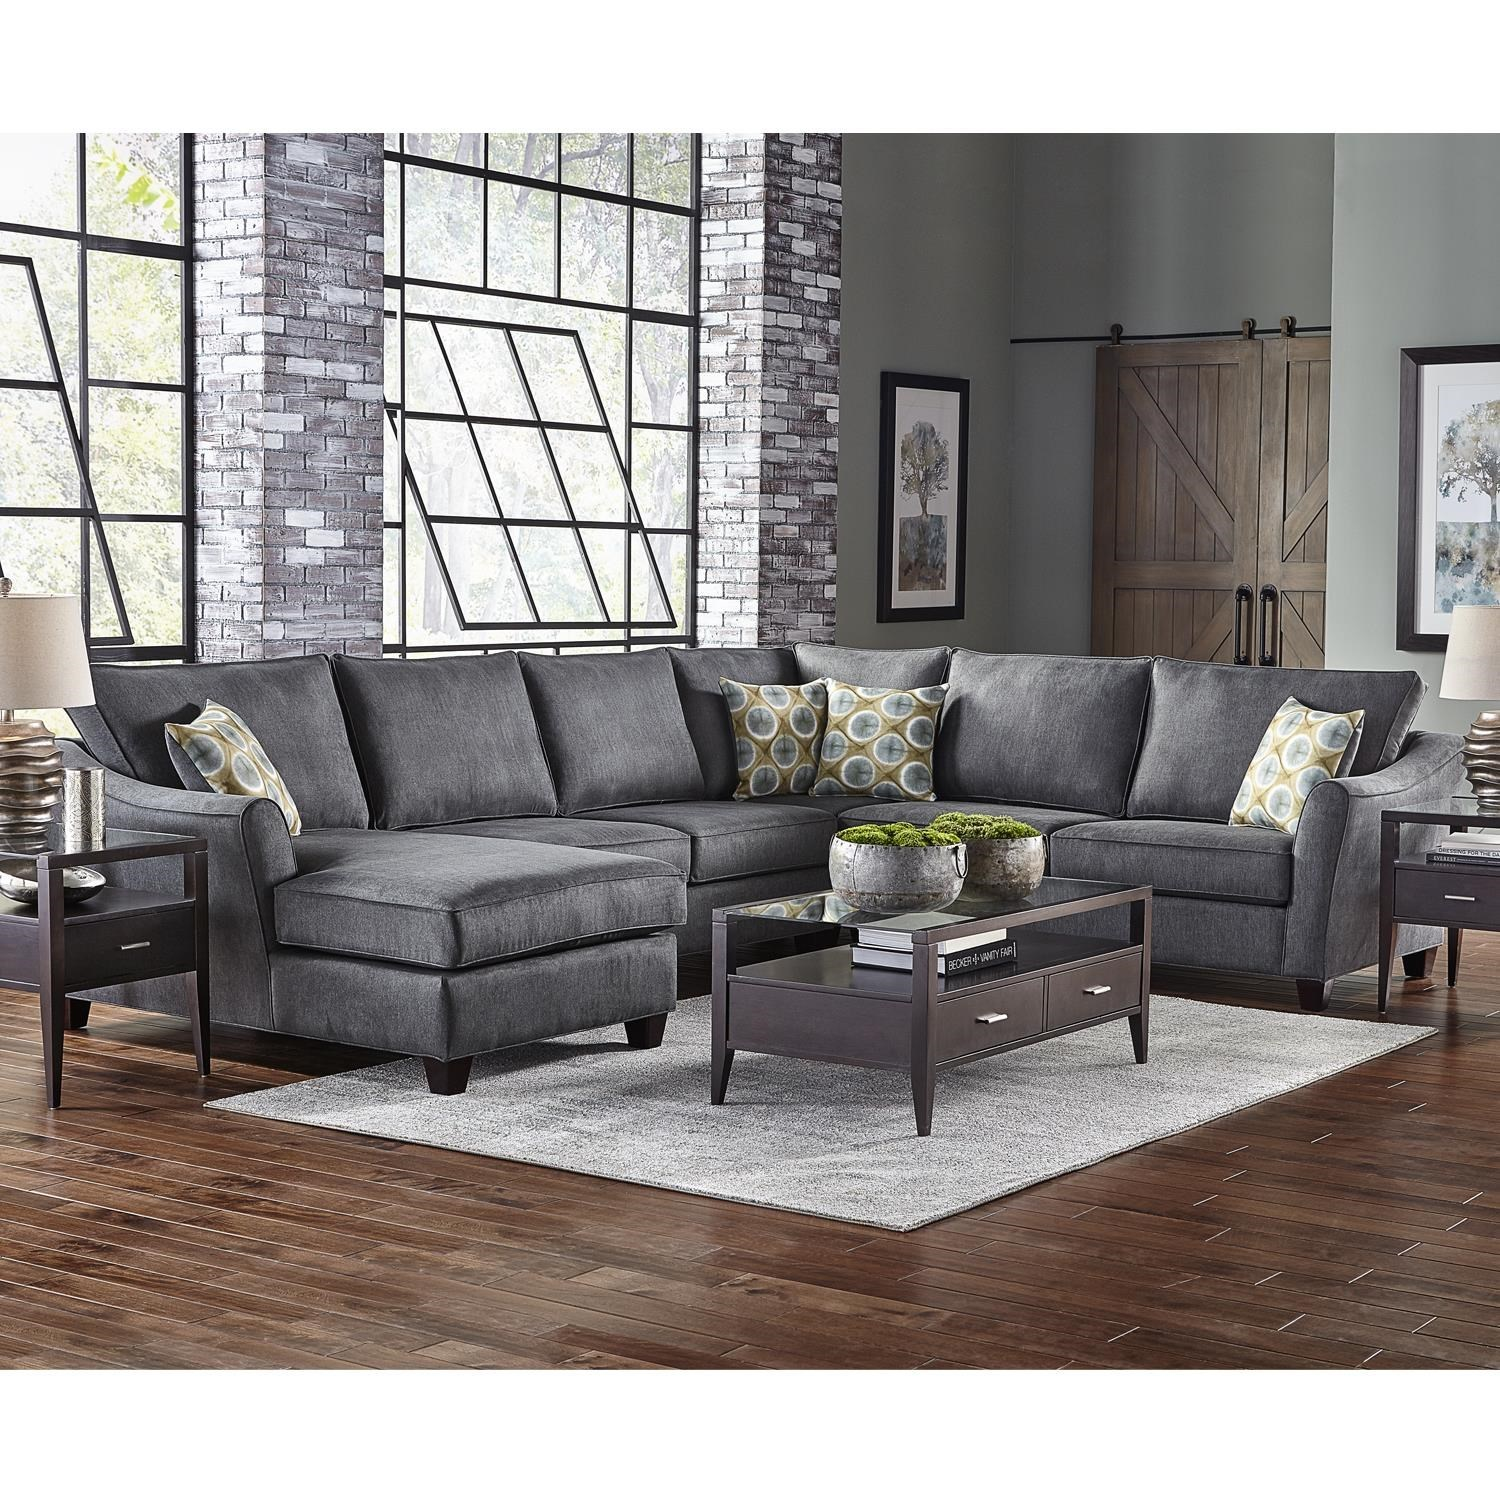 Belfort Essentials Fleetwood 6 Seat Sectional Sofa With Left Facing Chaise